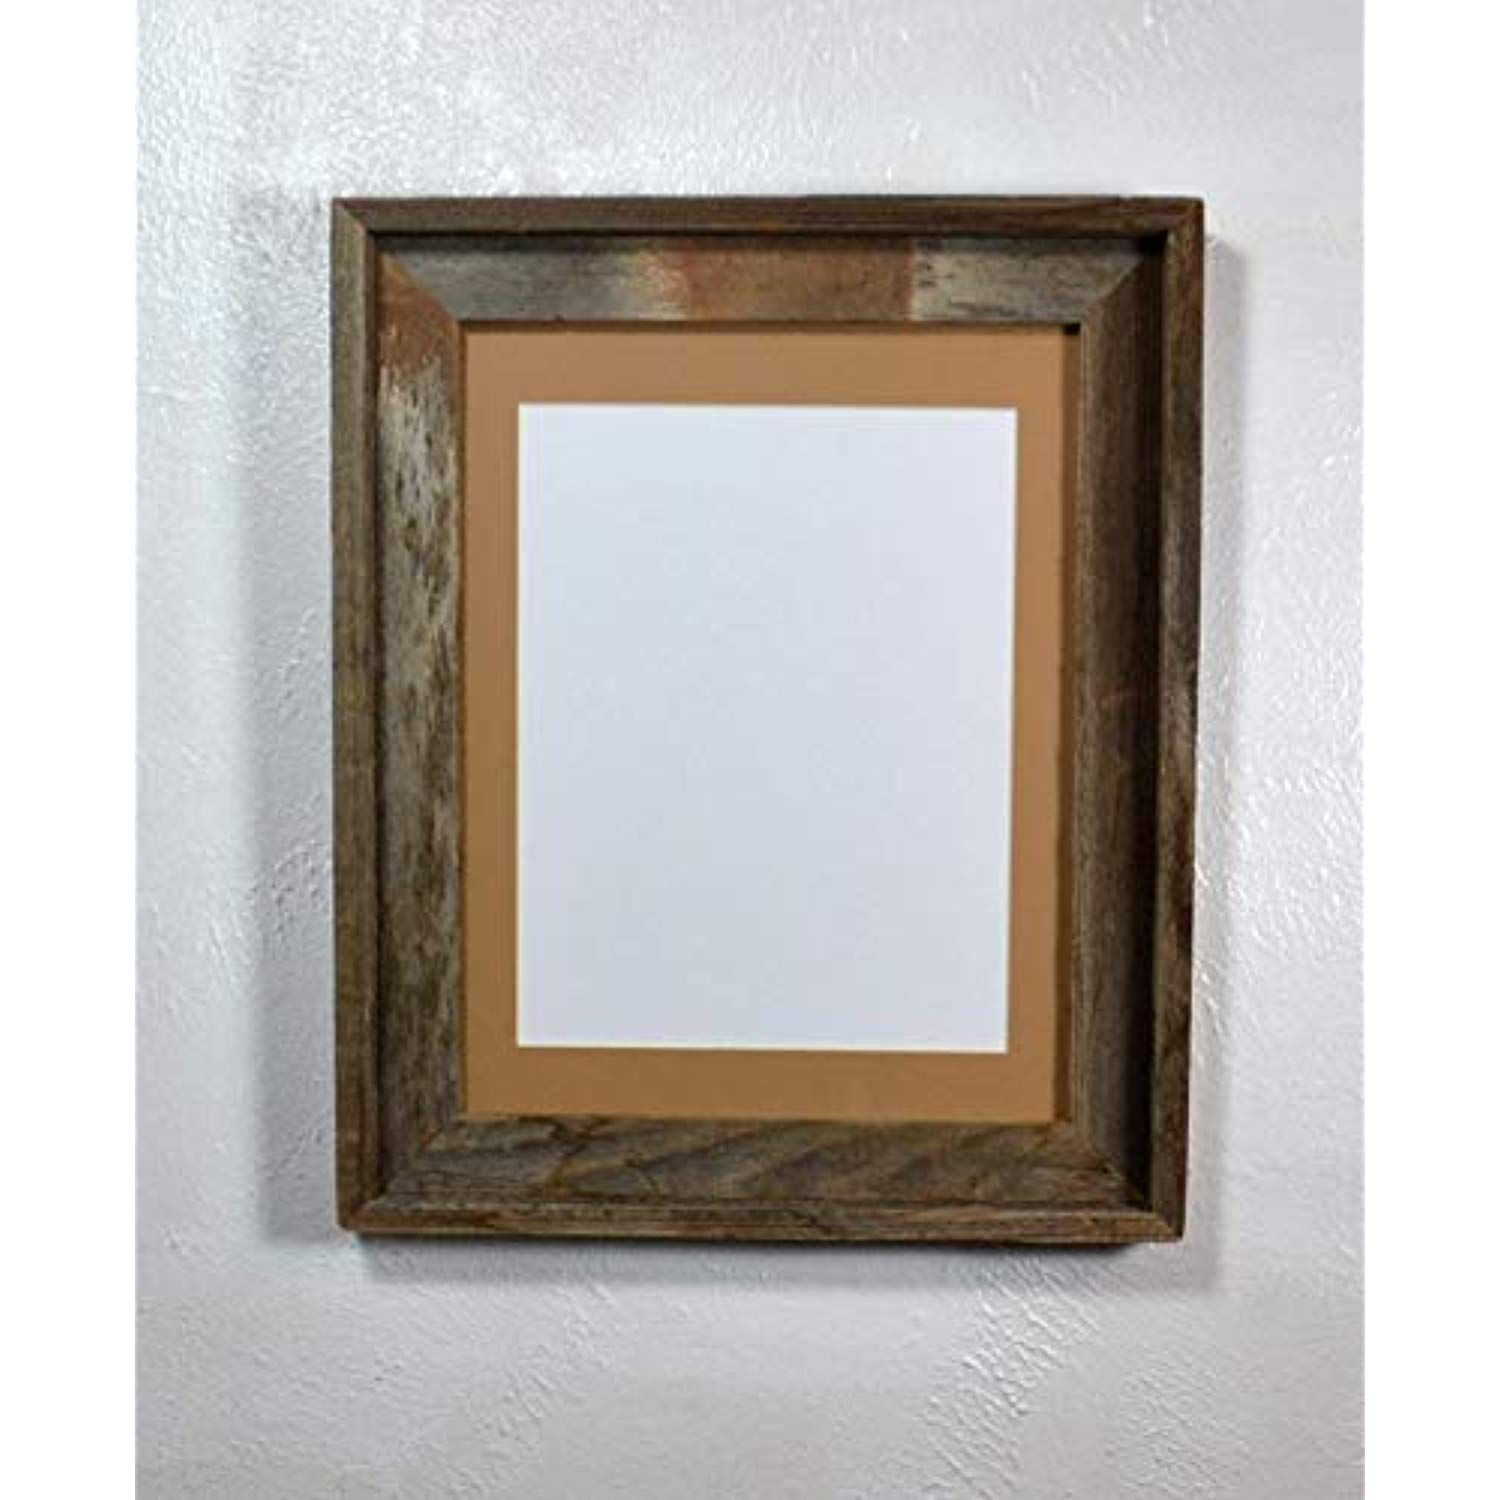 Rustic Picture Frame 8 5x11 Tan Mat With Glass Reclaimed Wood Wall Hung 11x14 Without Mat To View Rustic Picture Frames Picture On Wood Wood Picture Frames